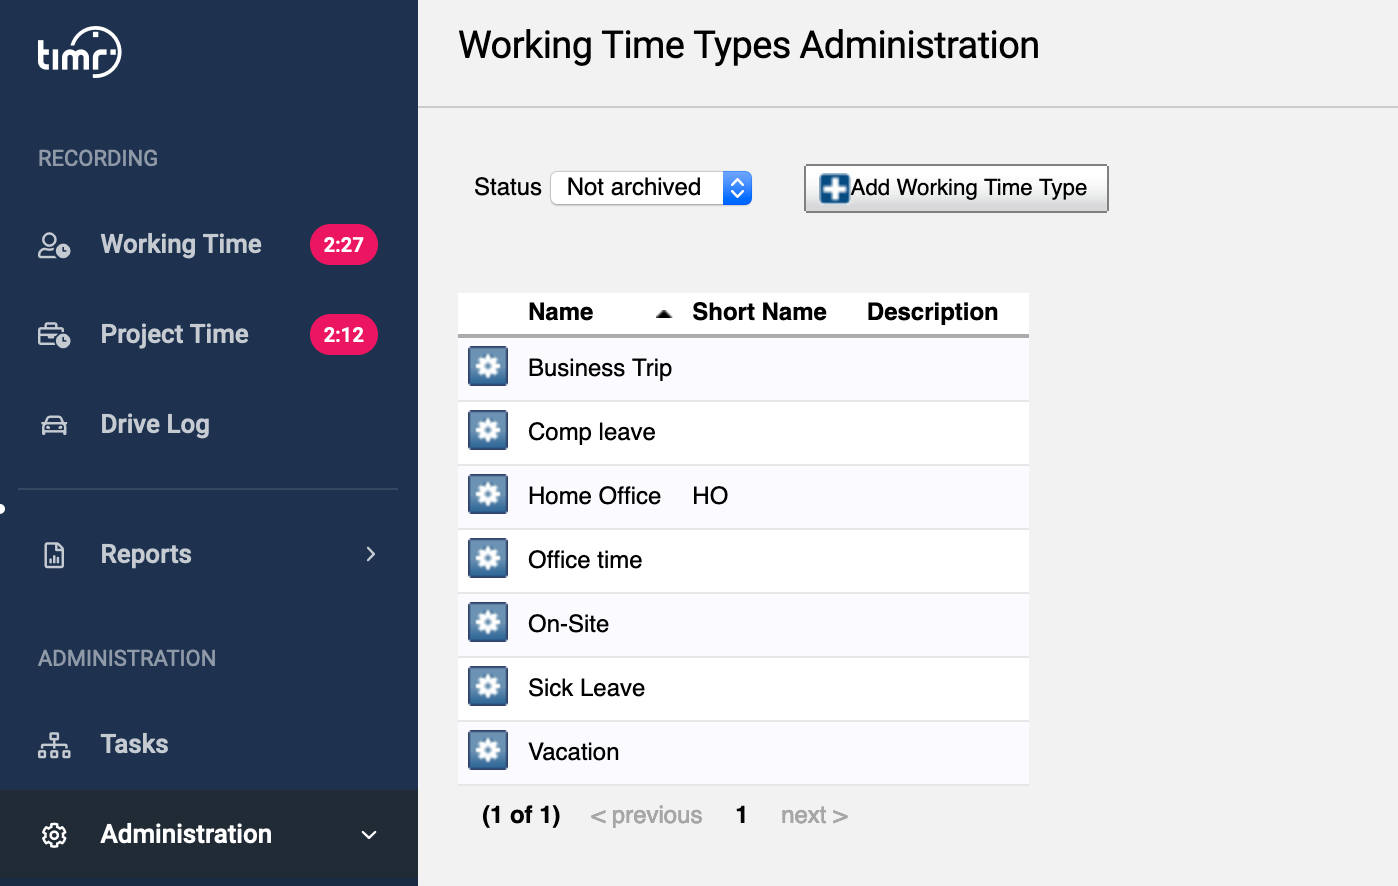 timr administration working time types